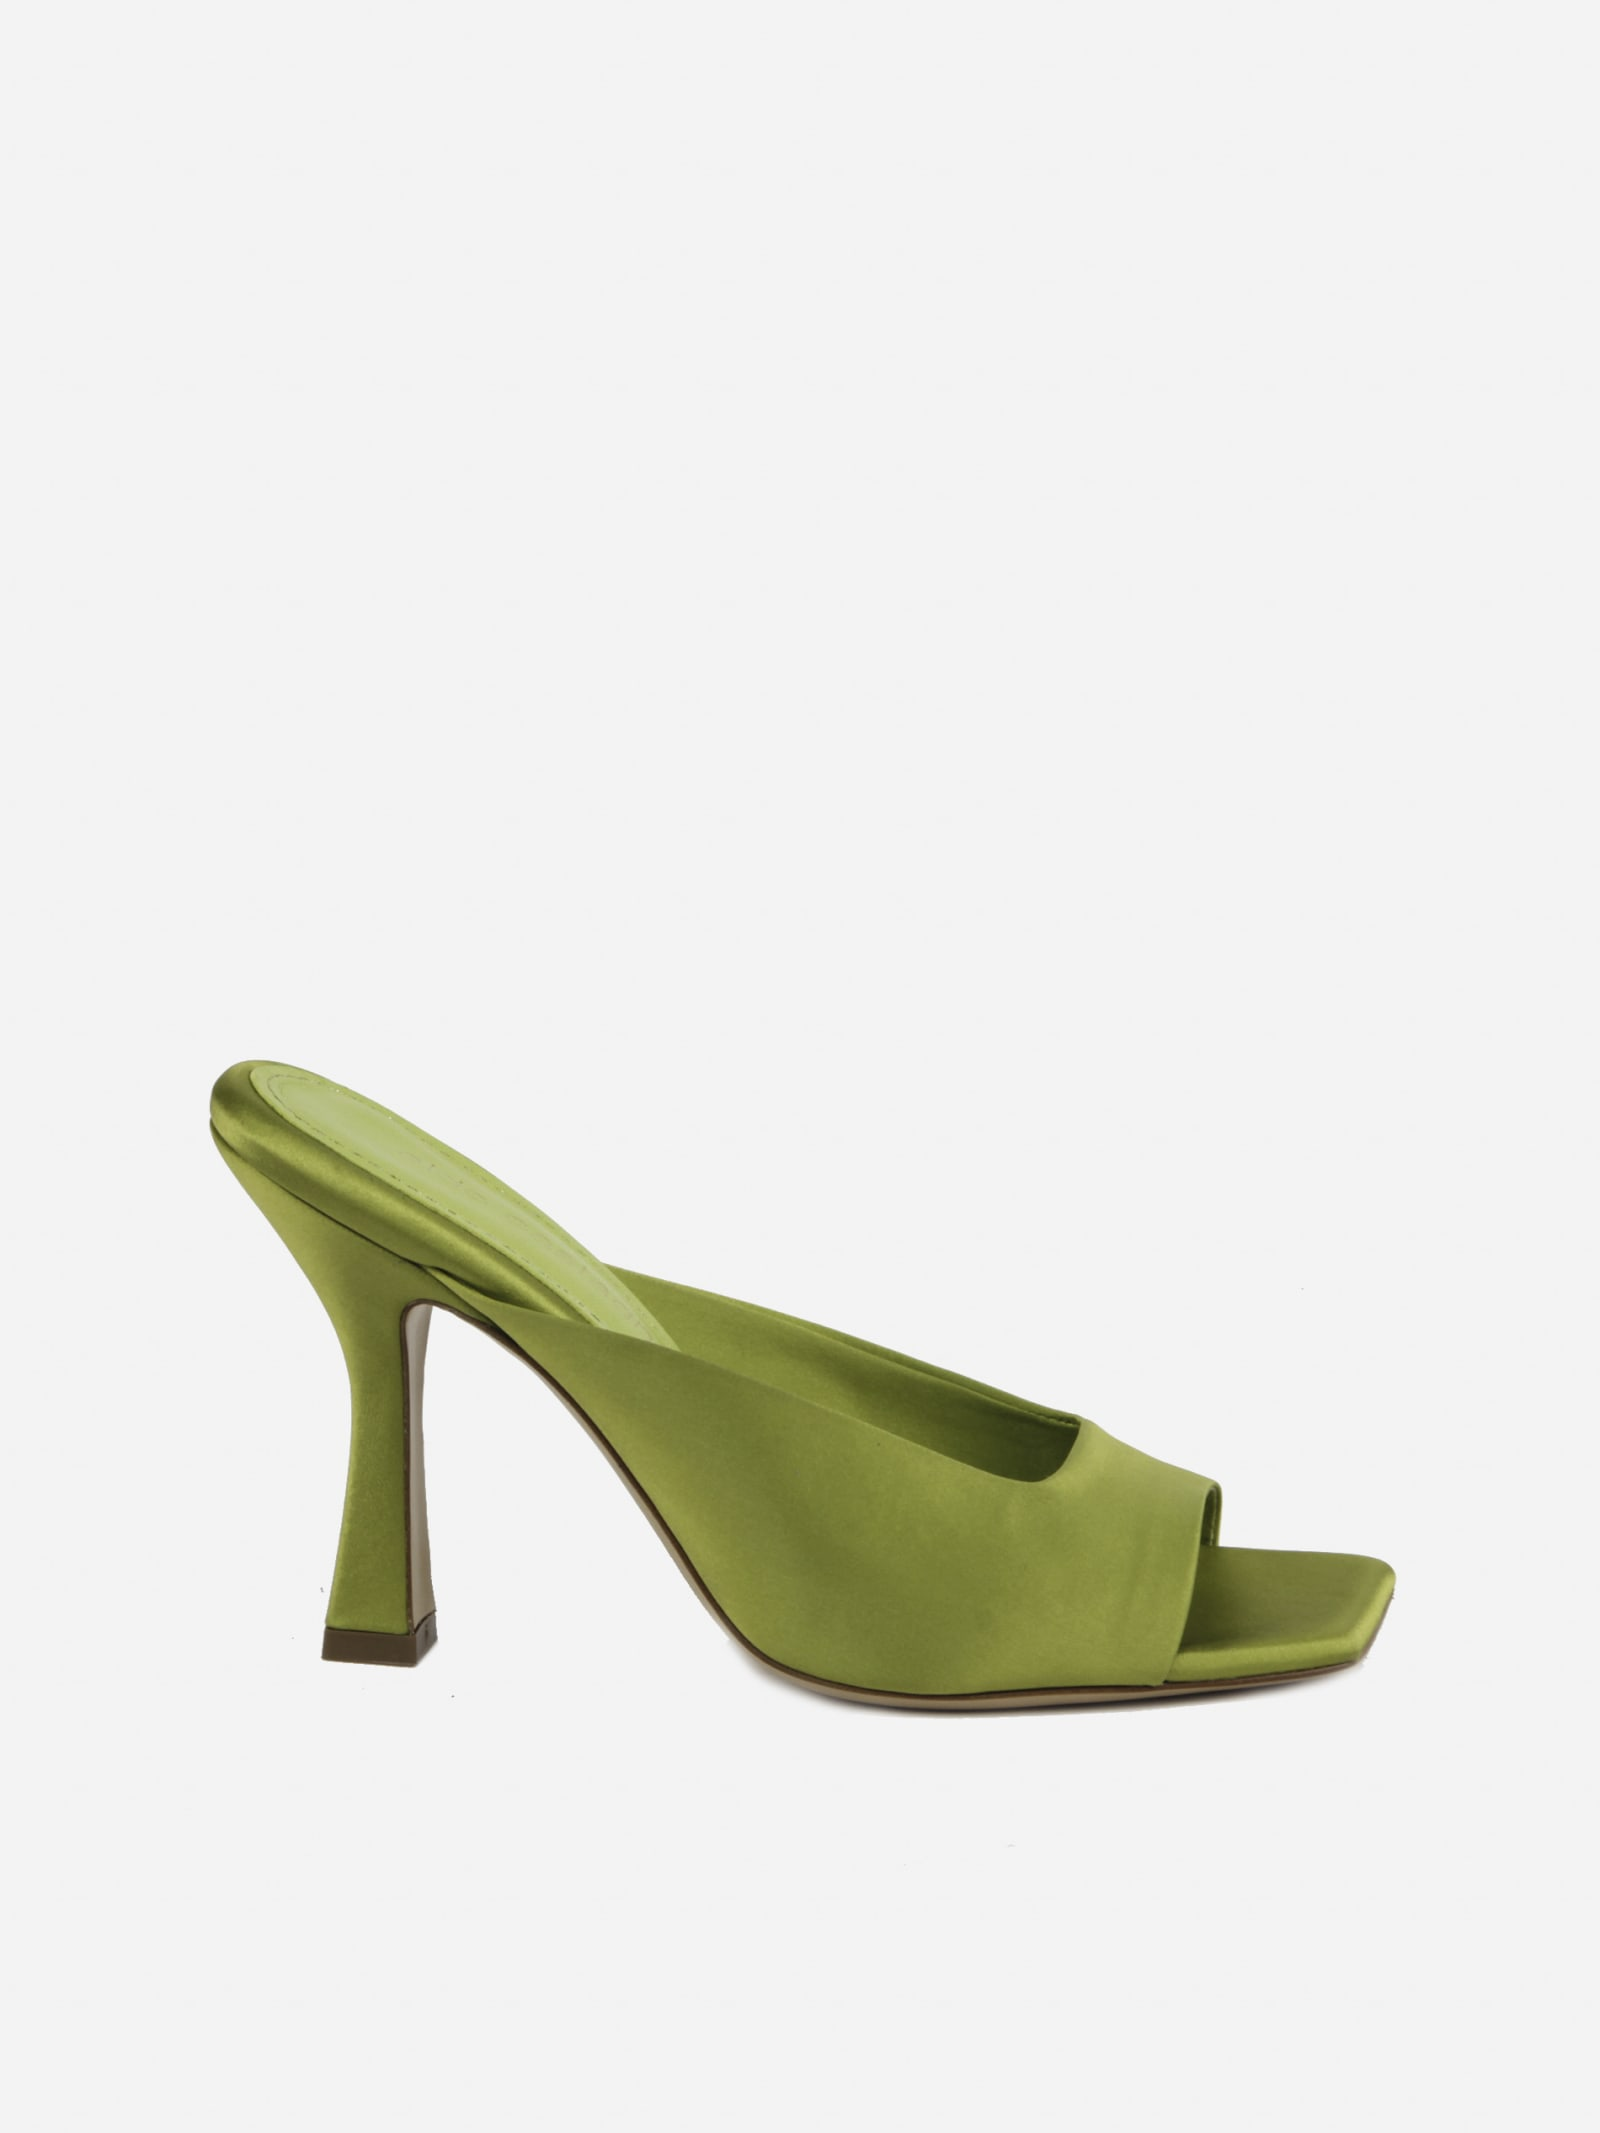 Square Heel Mules Made Of Satin